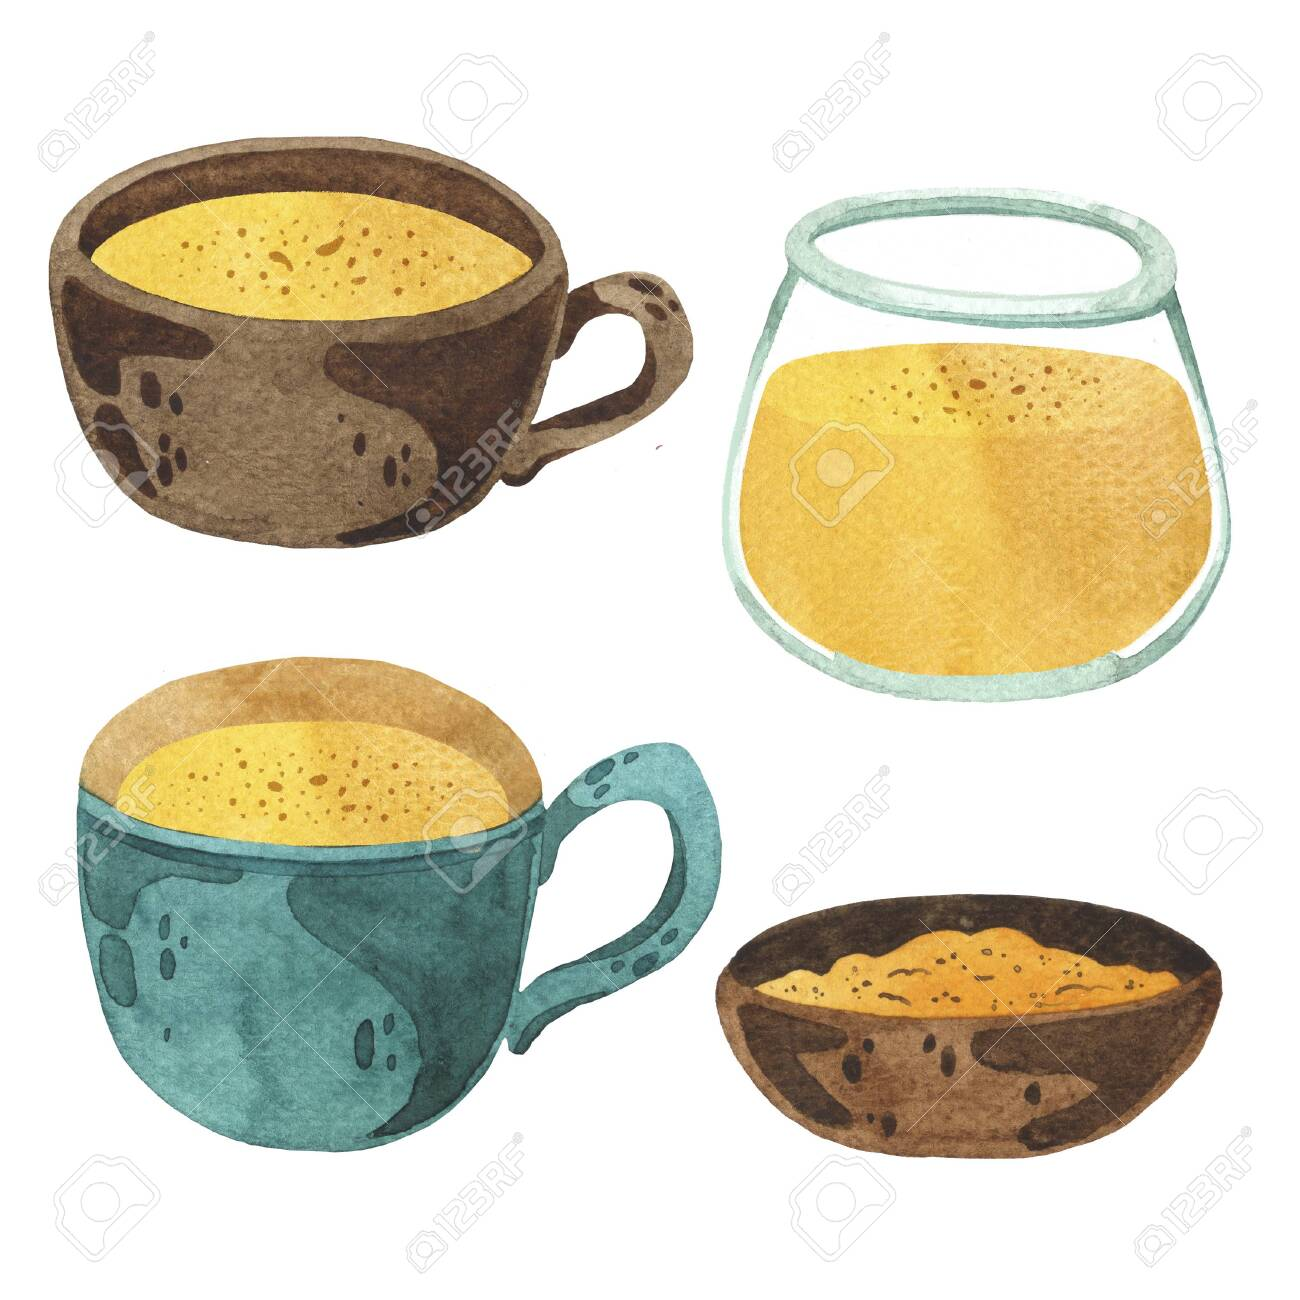 Set Of Golden Milk Clipart Of Turmeric Beverage Stock Photo Picture And Royalty Free Image Image 146085284 When designing a new logo you can be inspired by the visual logos found here. set of golden milk clipart of turmeric beverage